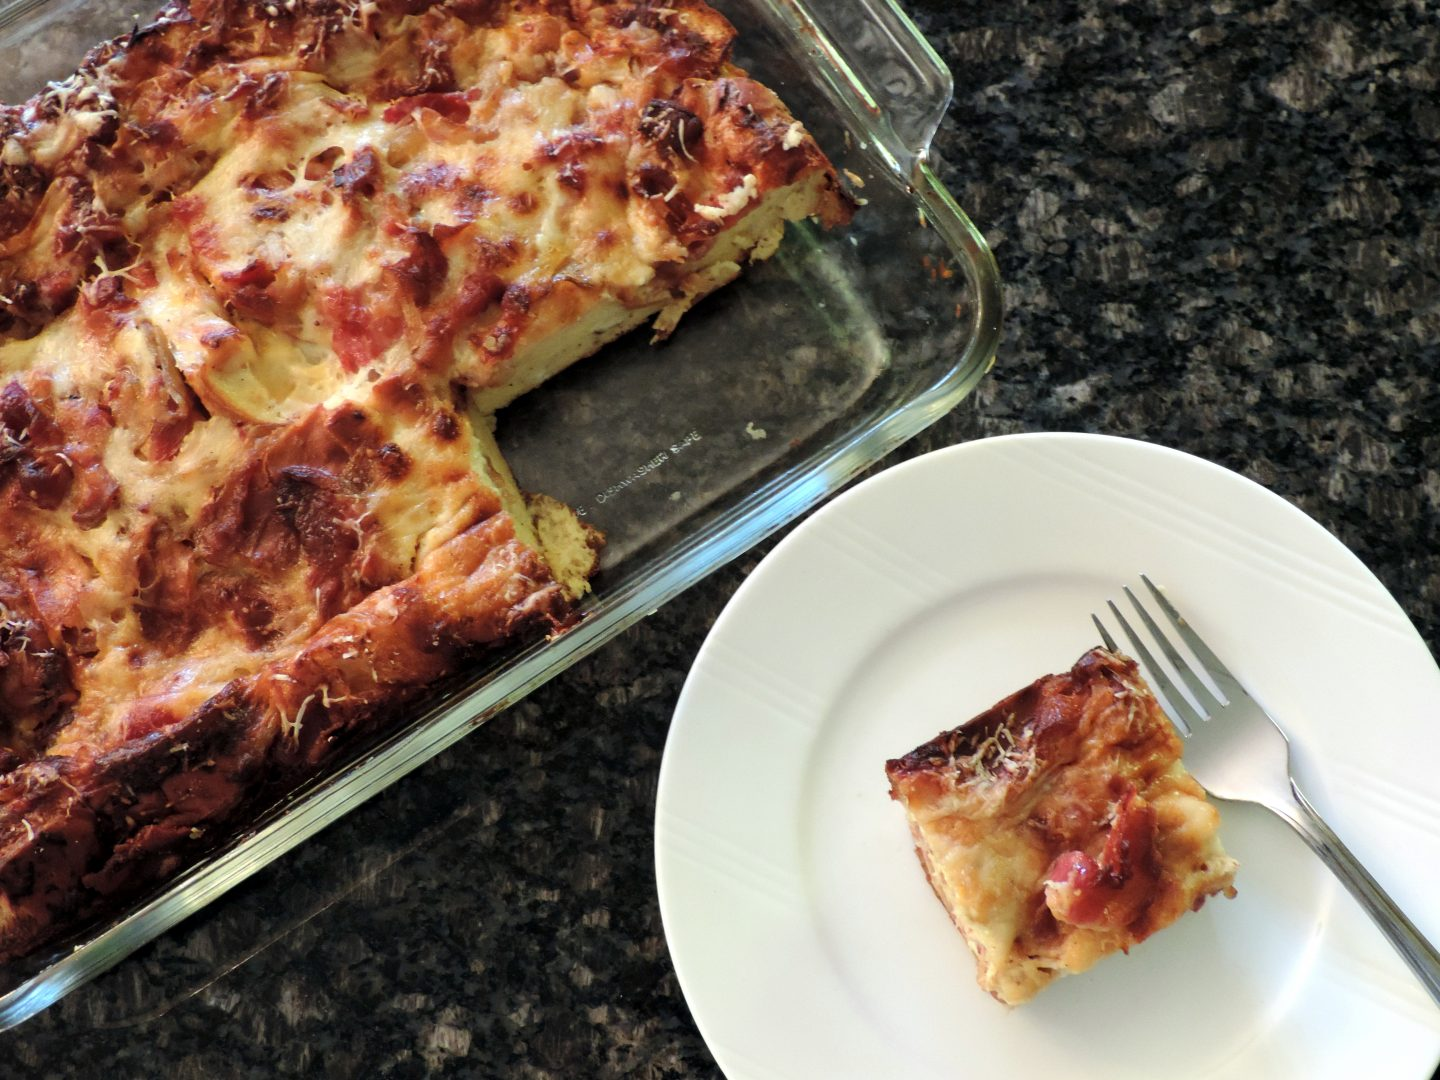 Gruyere, Bacon and Caramelized Onion Egg Casserole